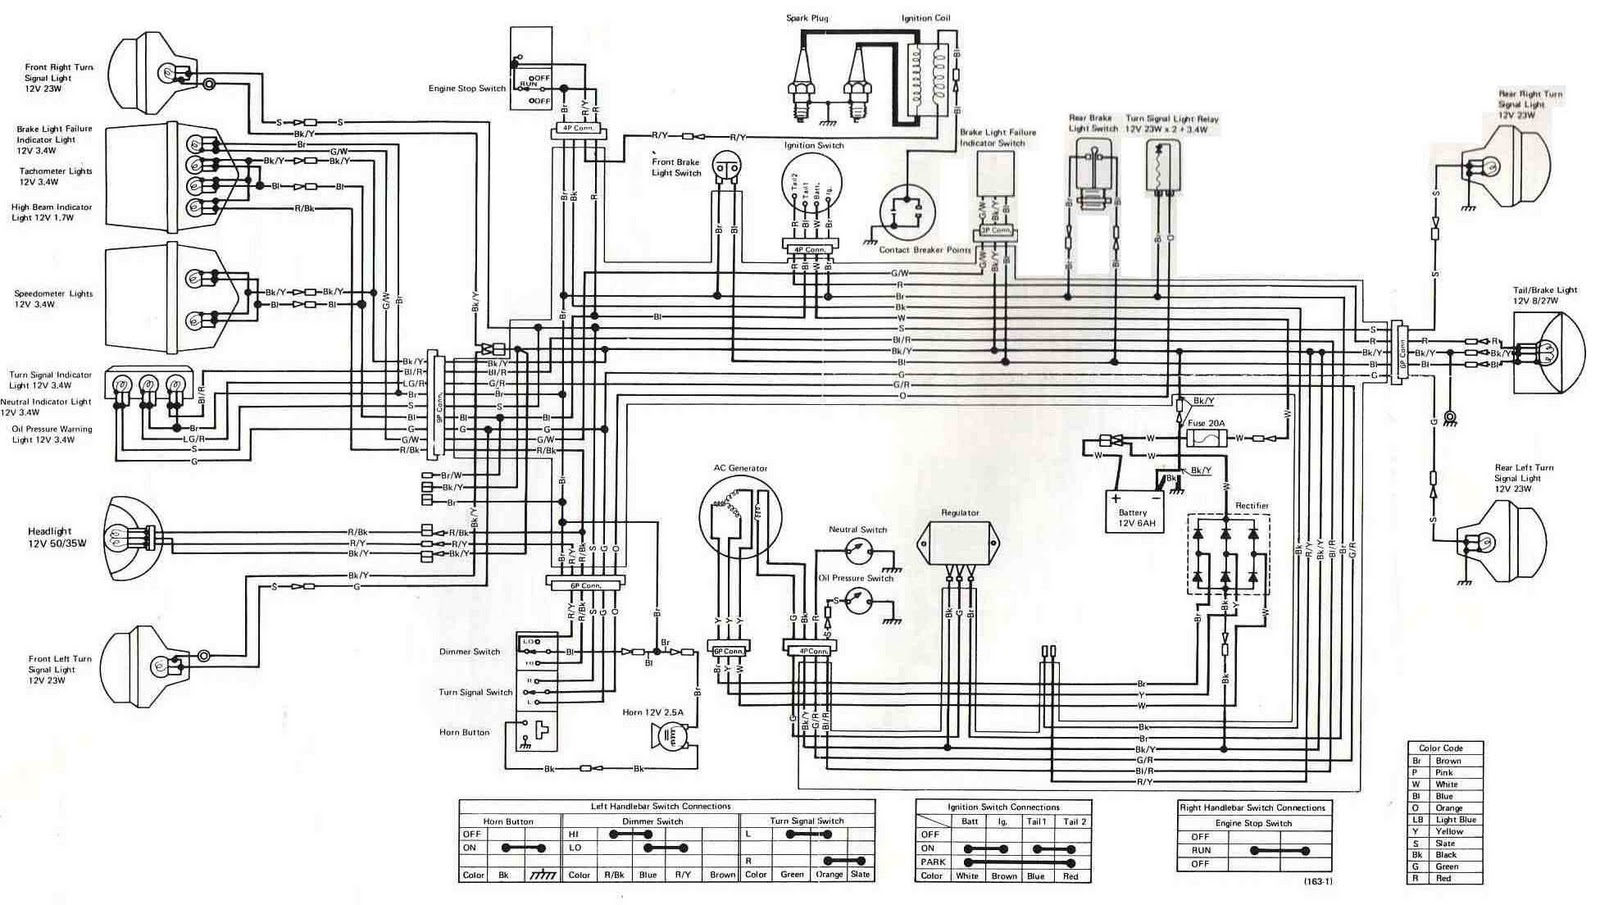 Kawasaki+KZ400+1975+Electrical+Wiring+Diagram kawasaki wiring diagram free toyota wiring diagrams \u2022 wiring kawasaki wiring diagrams at gsmportal.co